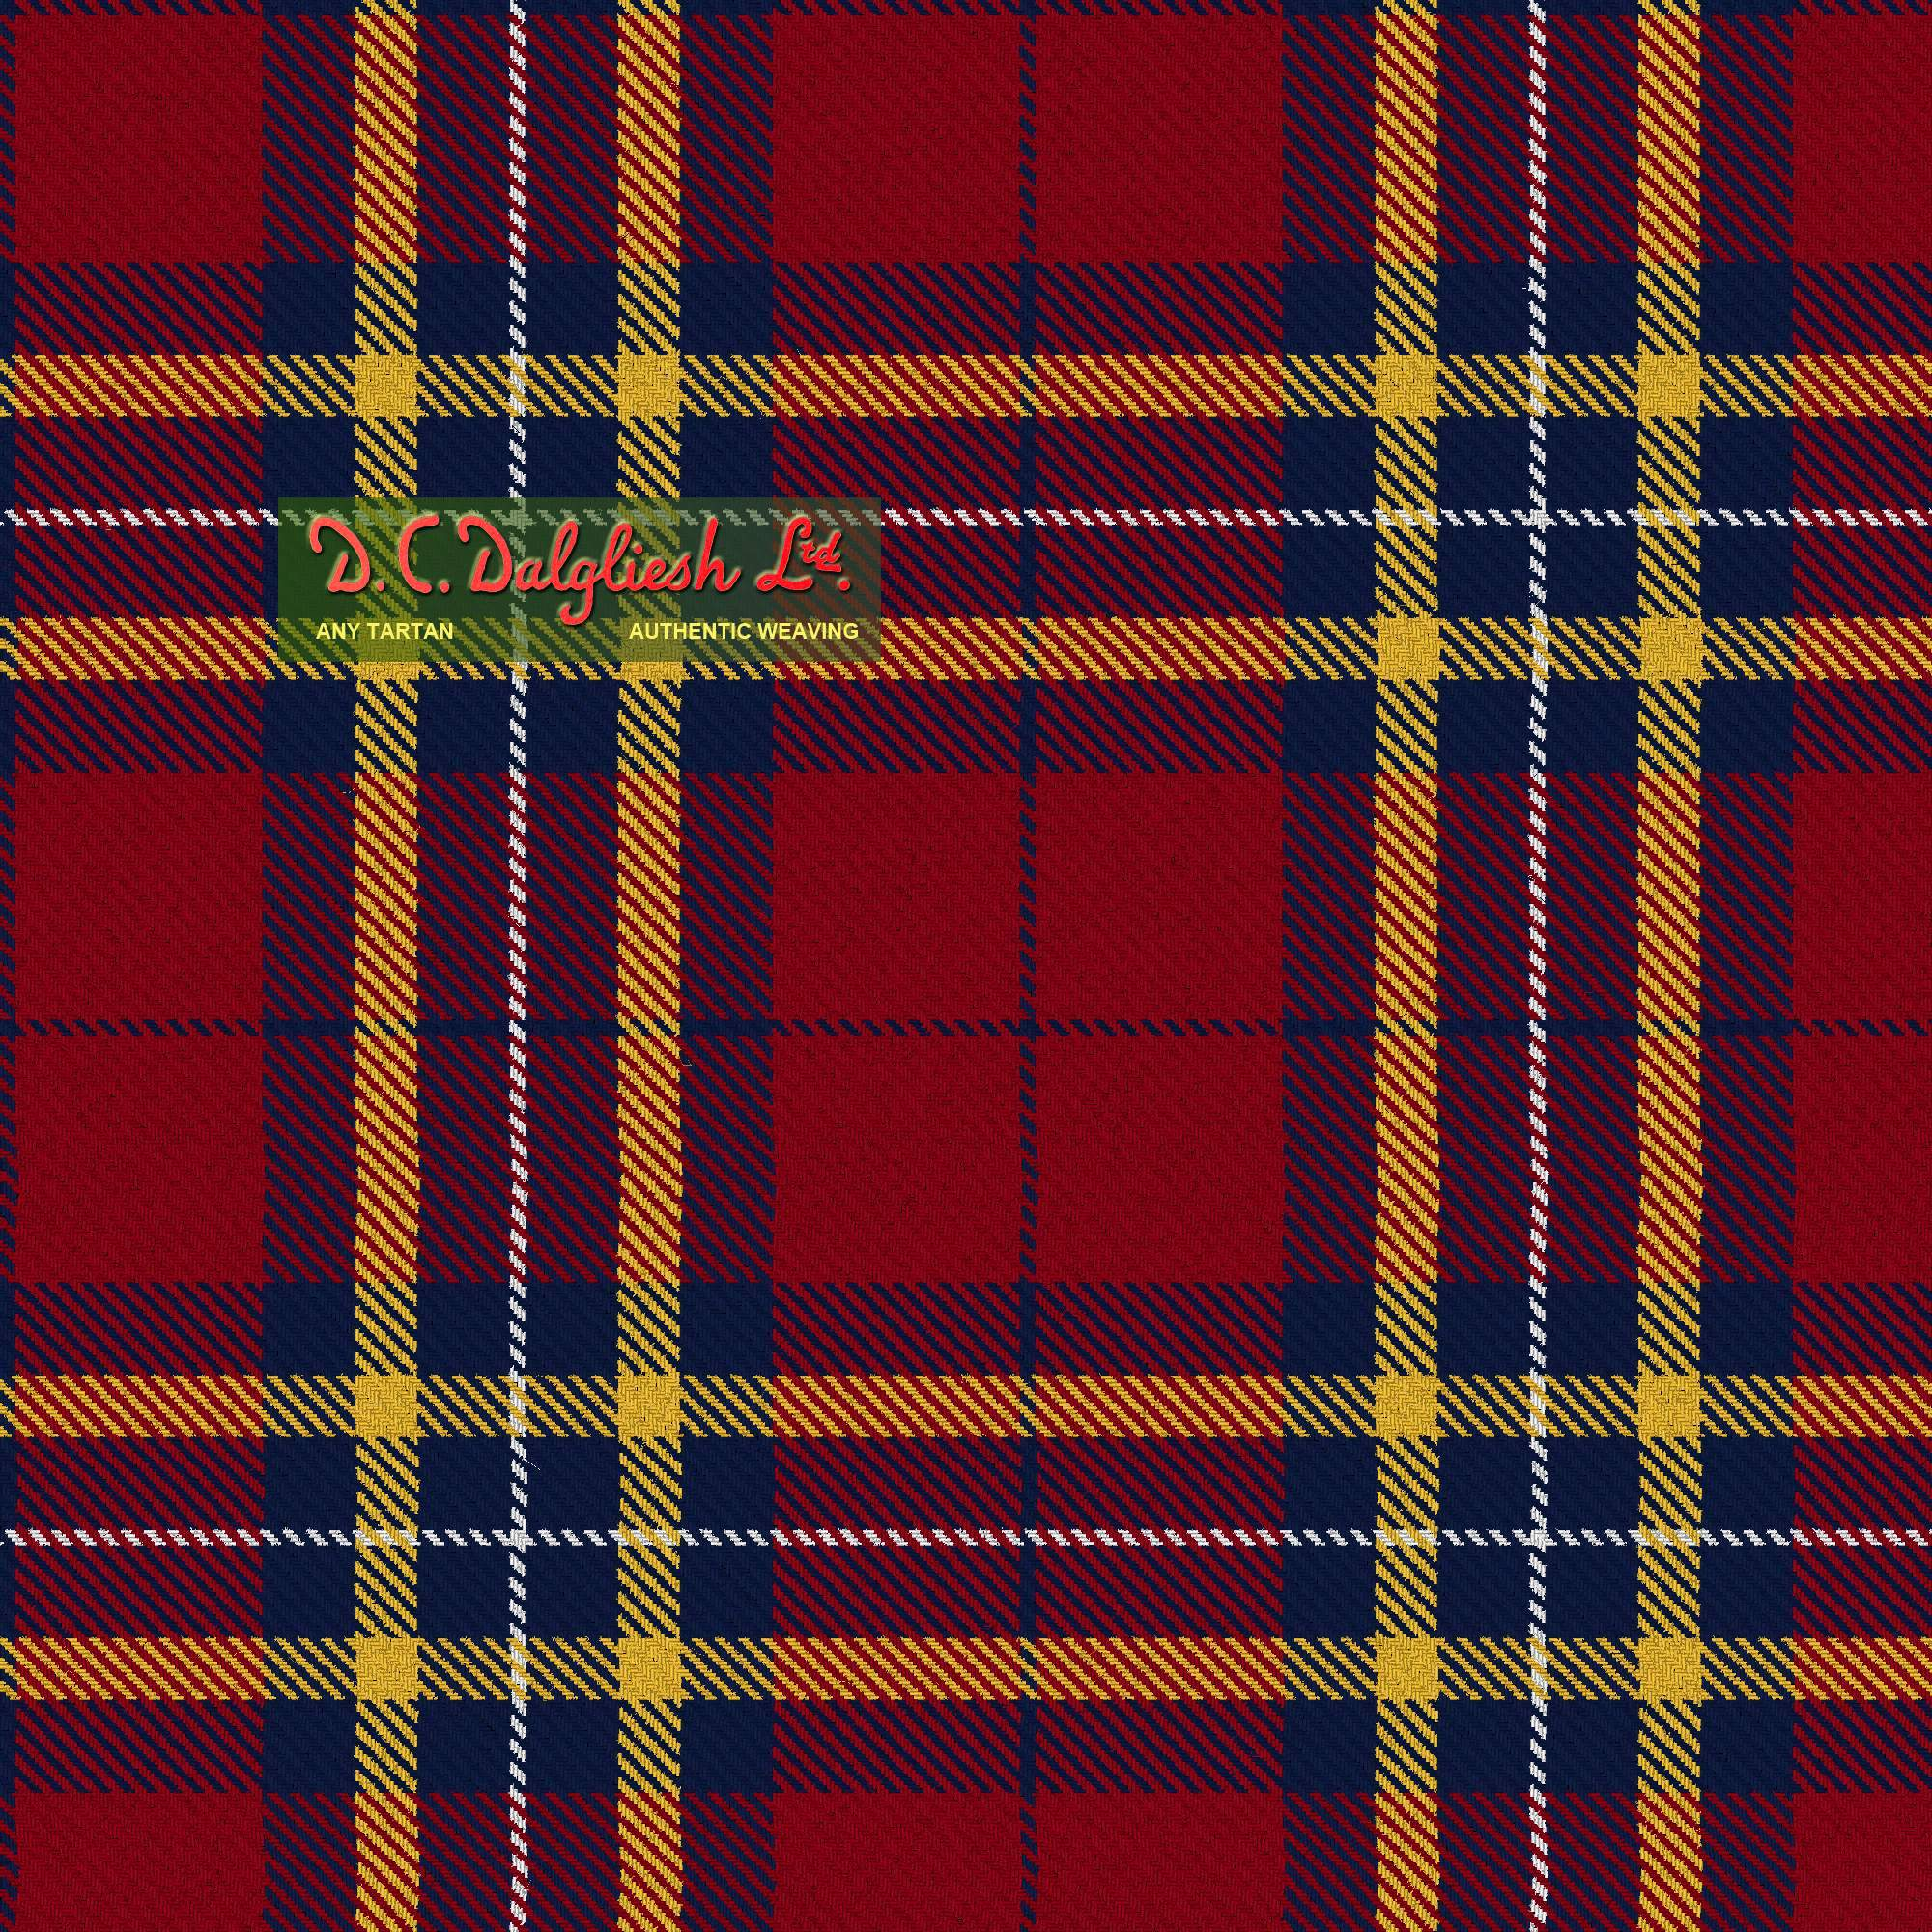 Superfast Ferries Tartan Scotweb Designer Feryys Maroon Enlarge